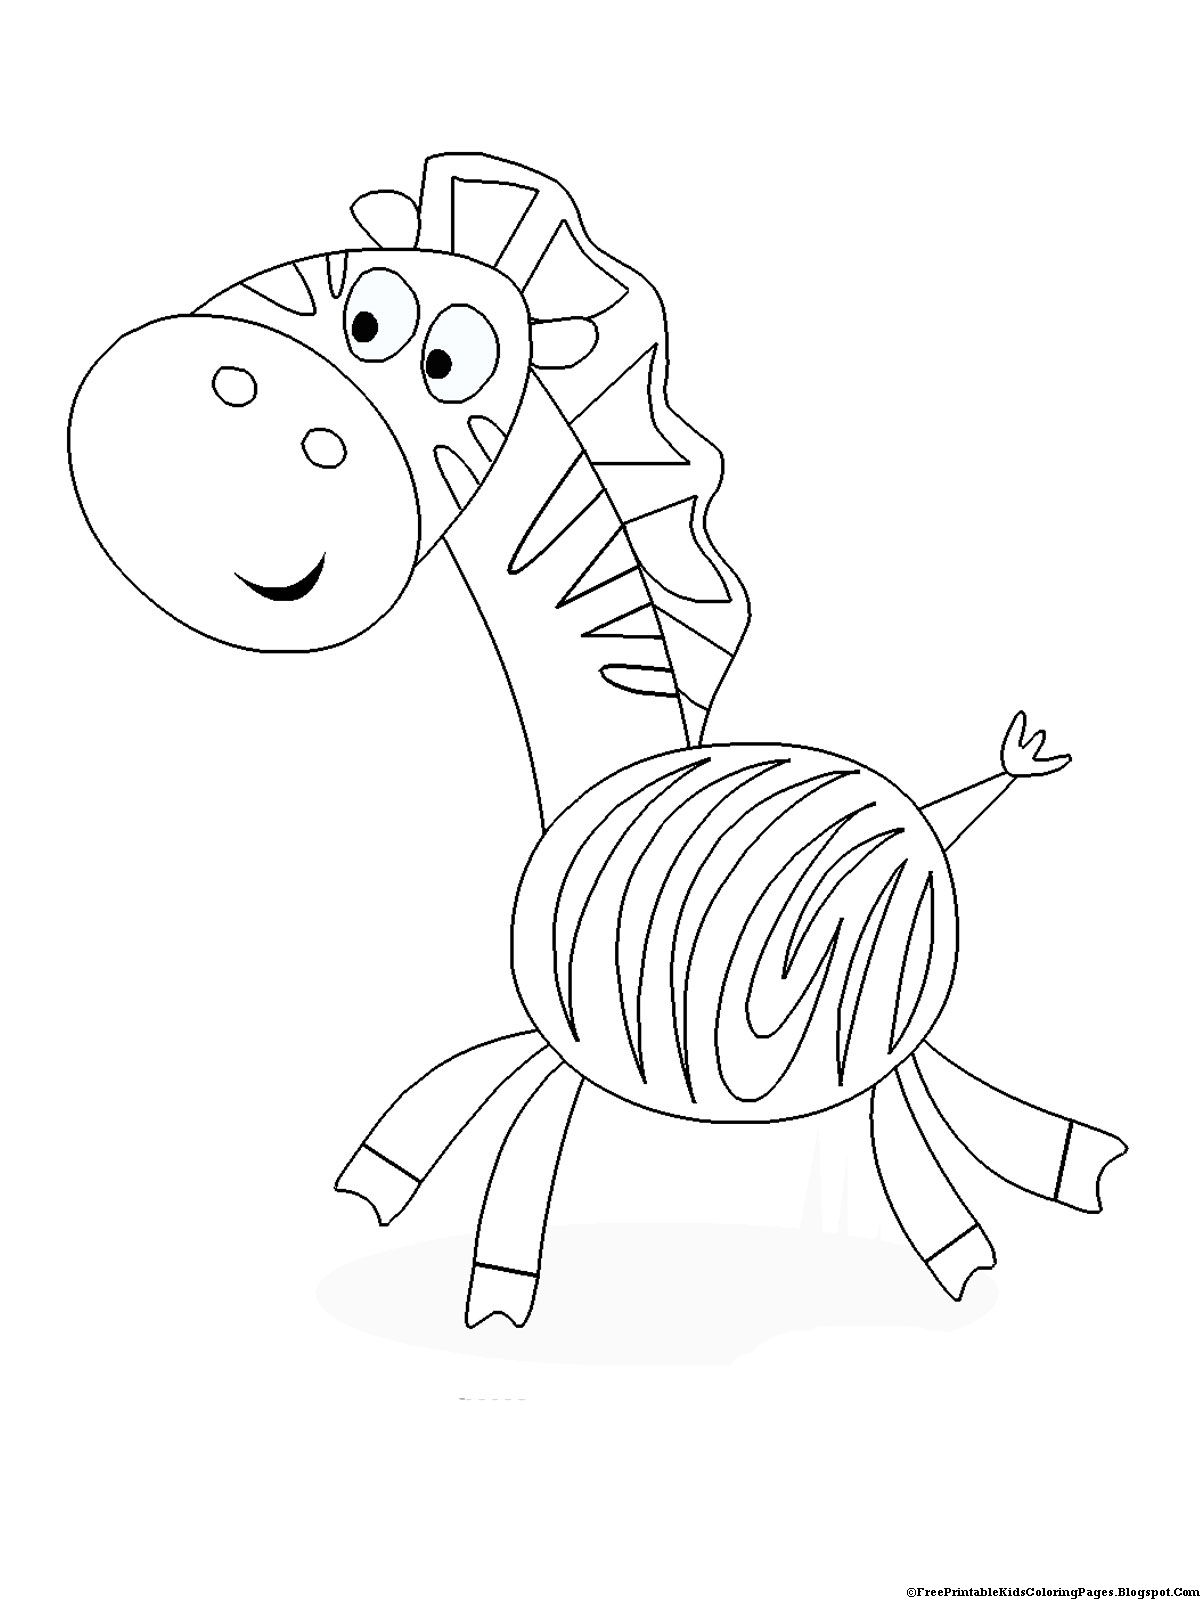 free pictures to print and colour kids page butterfly coloring pages printable colouring to pictures print colour free and